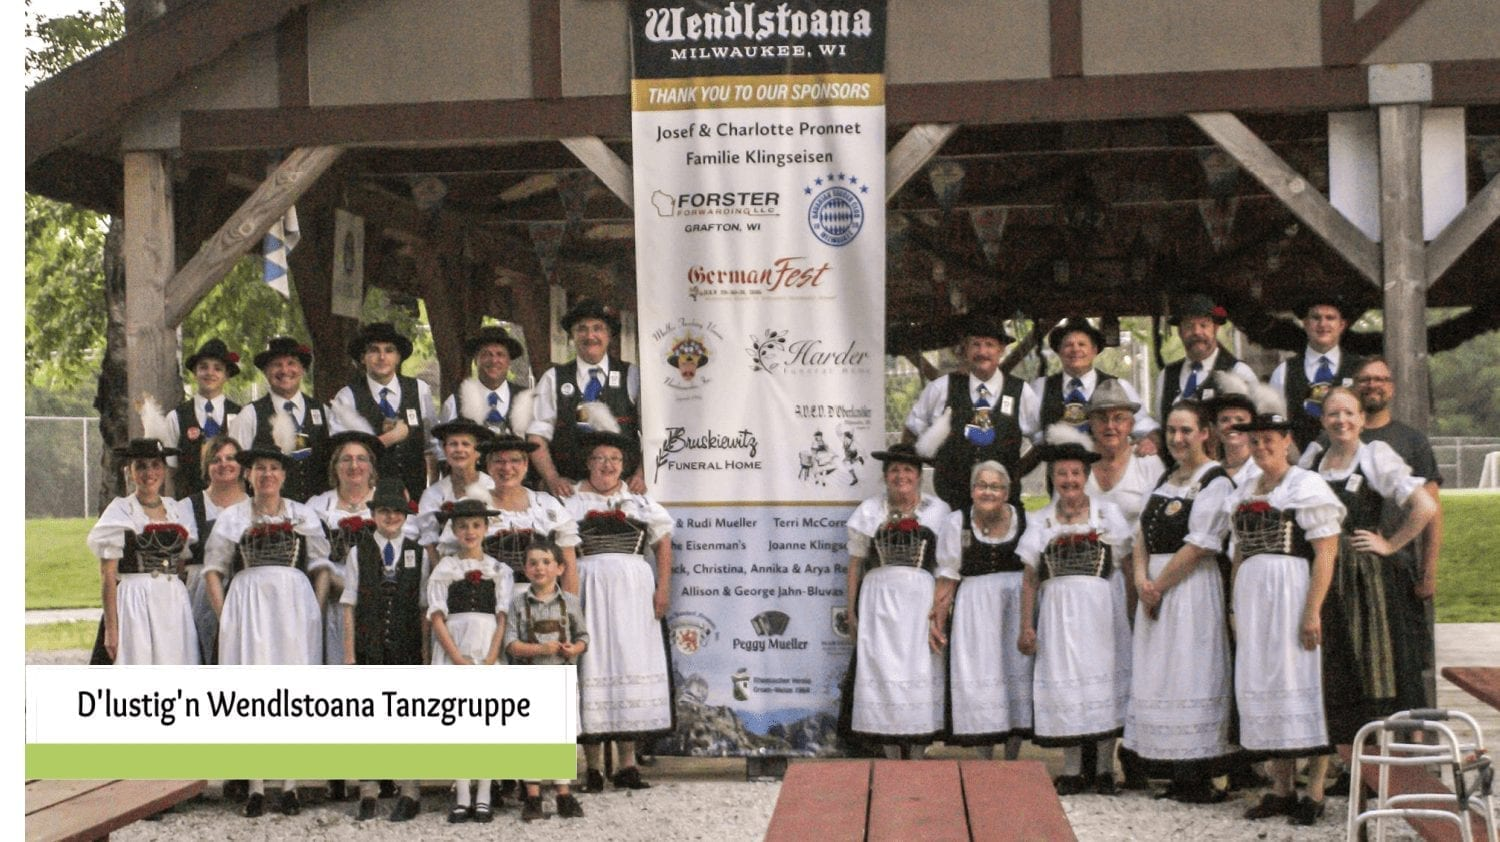 D'lustig'n Wendlstoana Tanzgruppe- Keeping up Tradition with Dance